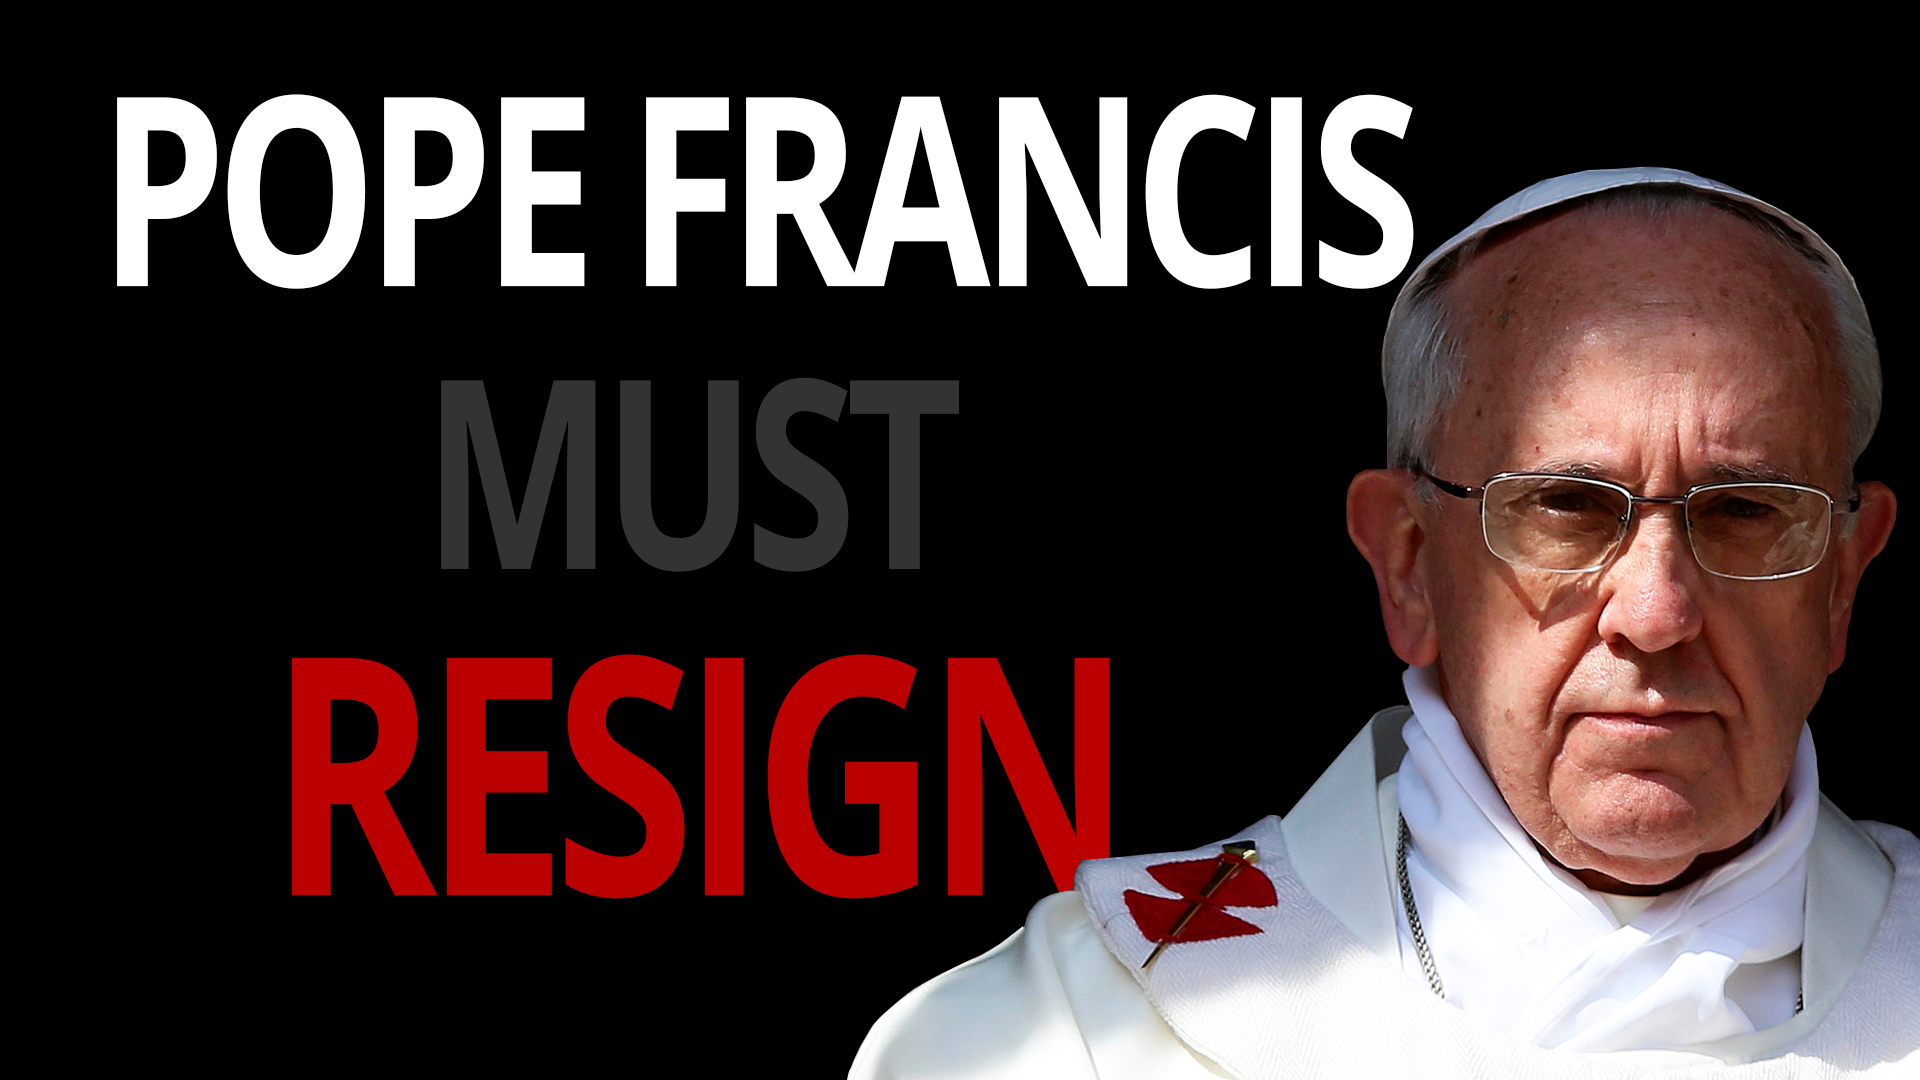 e  michael jones on why the pope should resign  brian ruhe